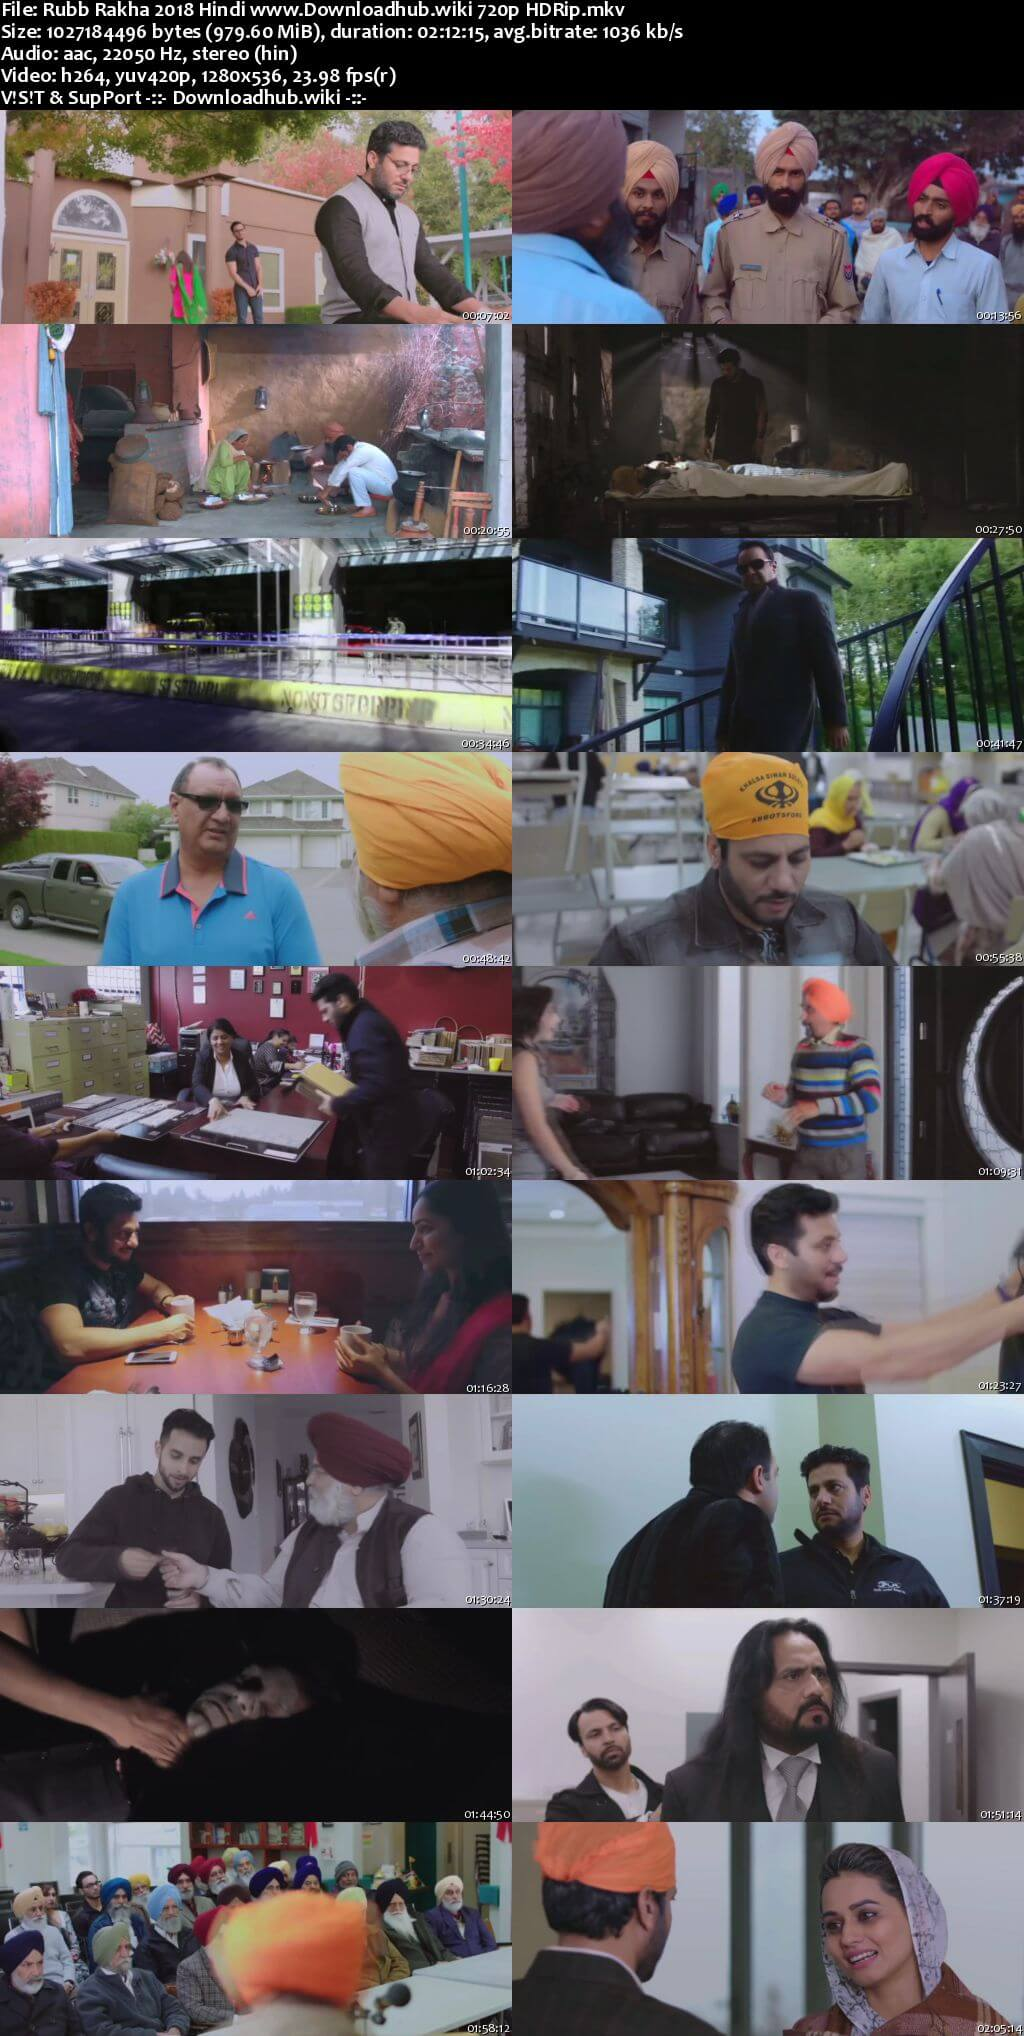 Rubb Rakha 2018 Hindi 720p HDRip x264